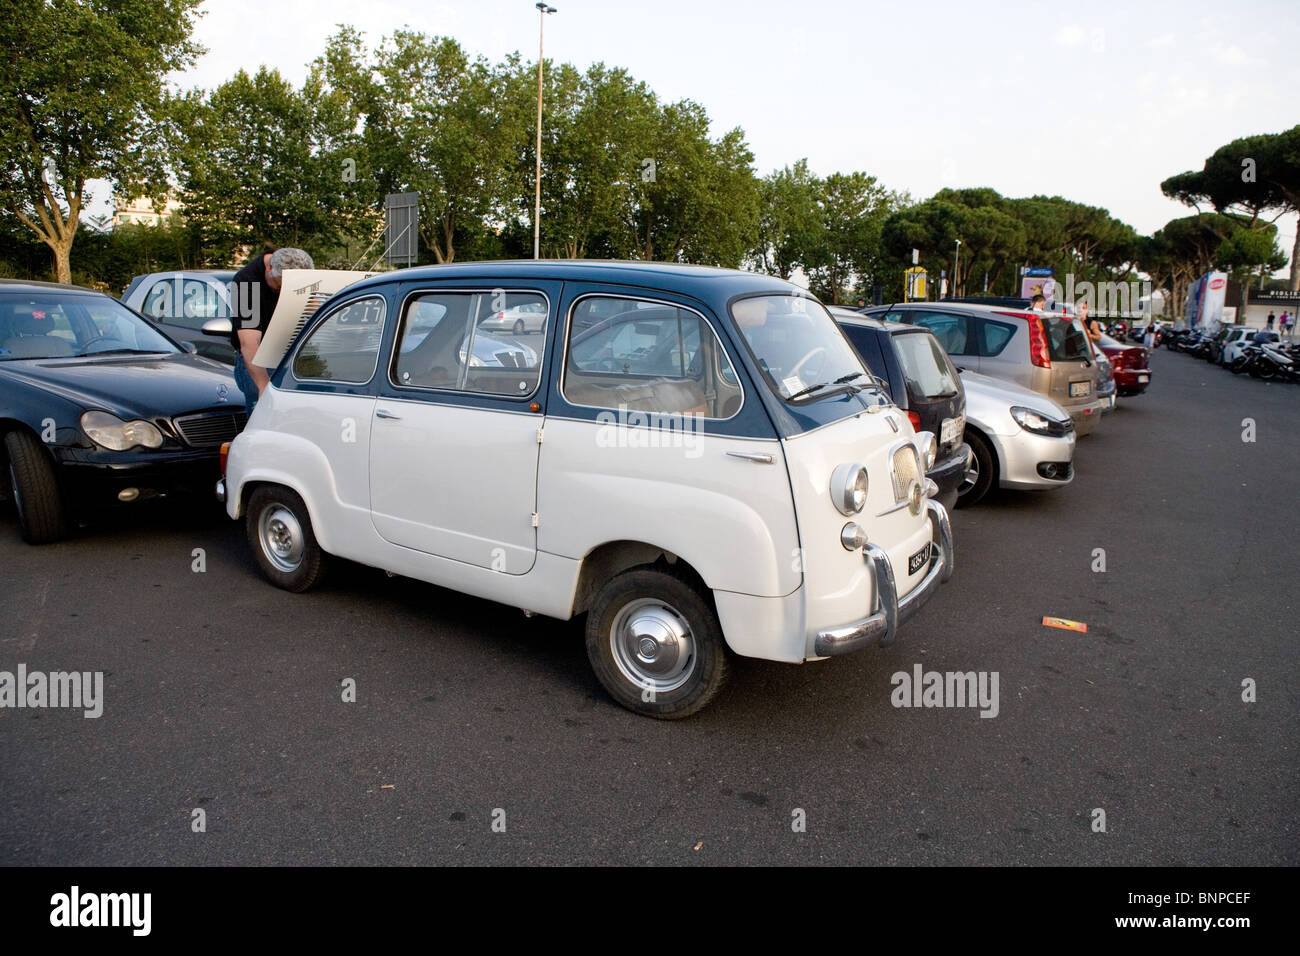 classic car old Italian vintage car Fiat 600 60's years - Stock Image